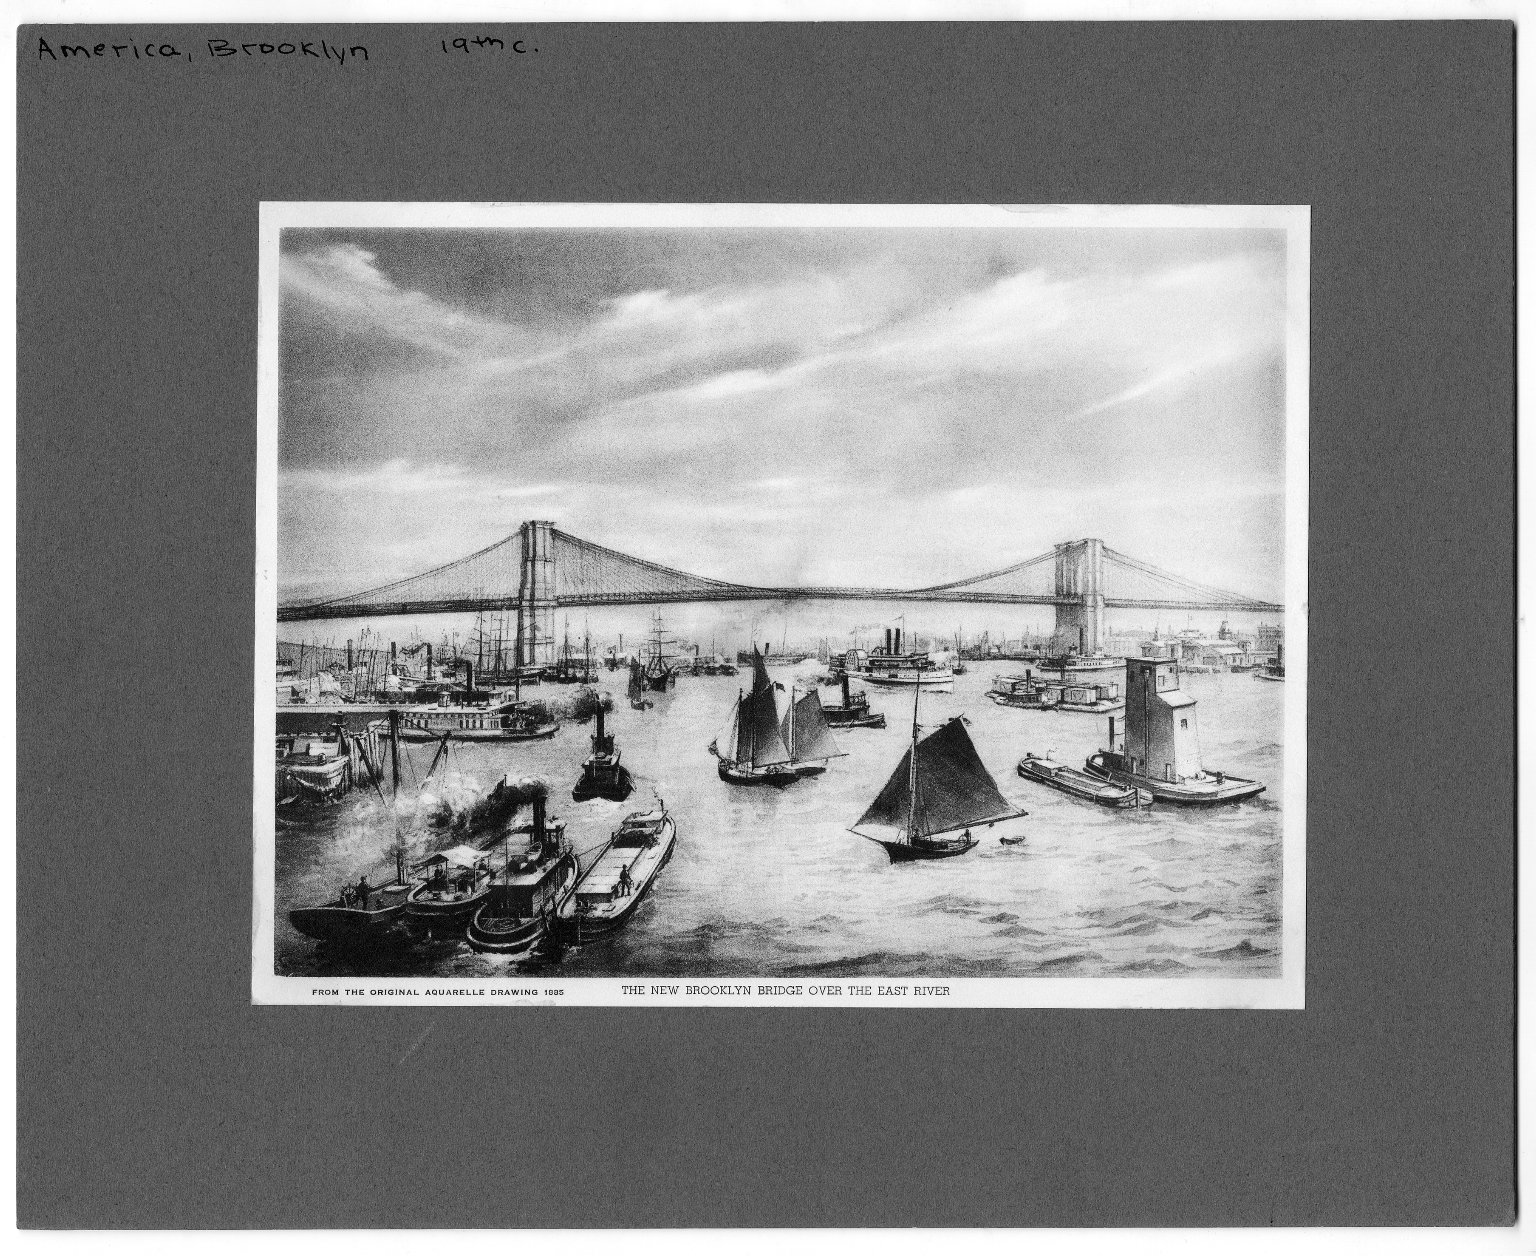 Brooklyn Bridge over the East River from the orginal aquarelle drawing 1885.